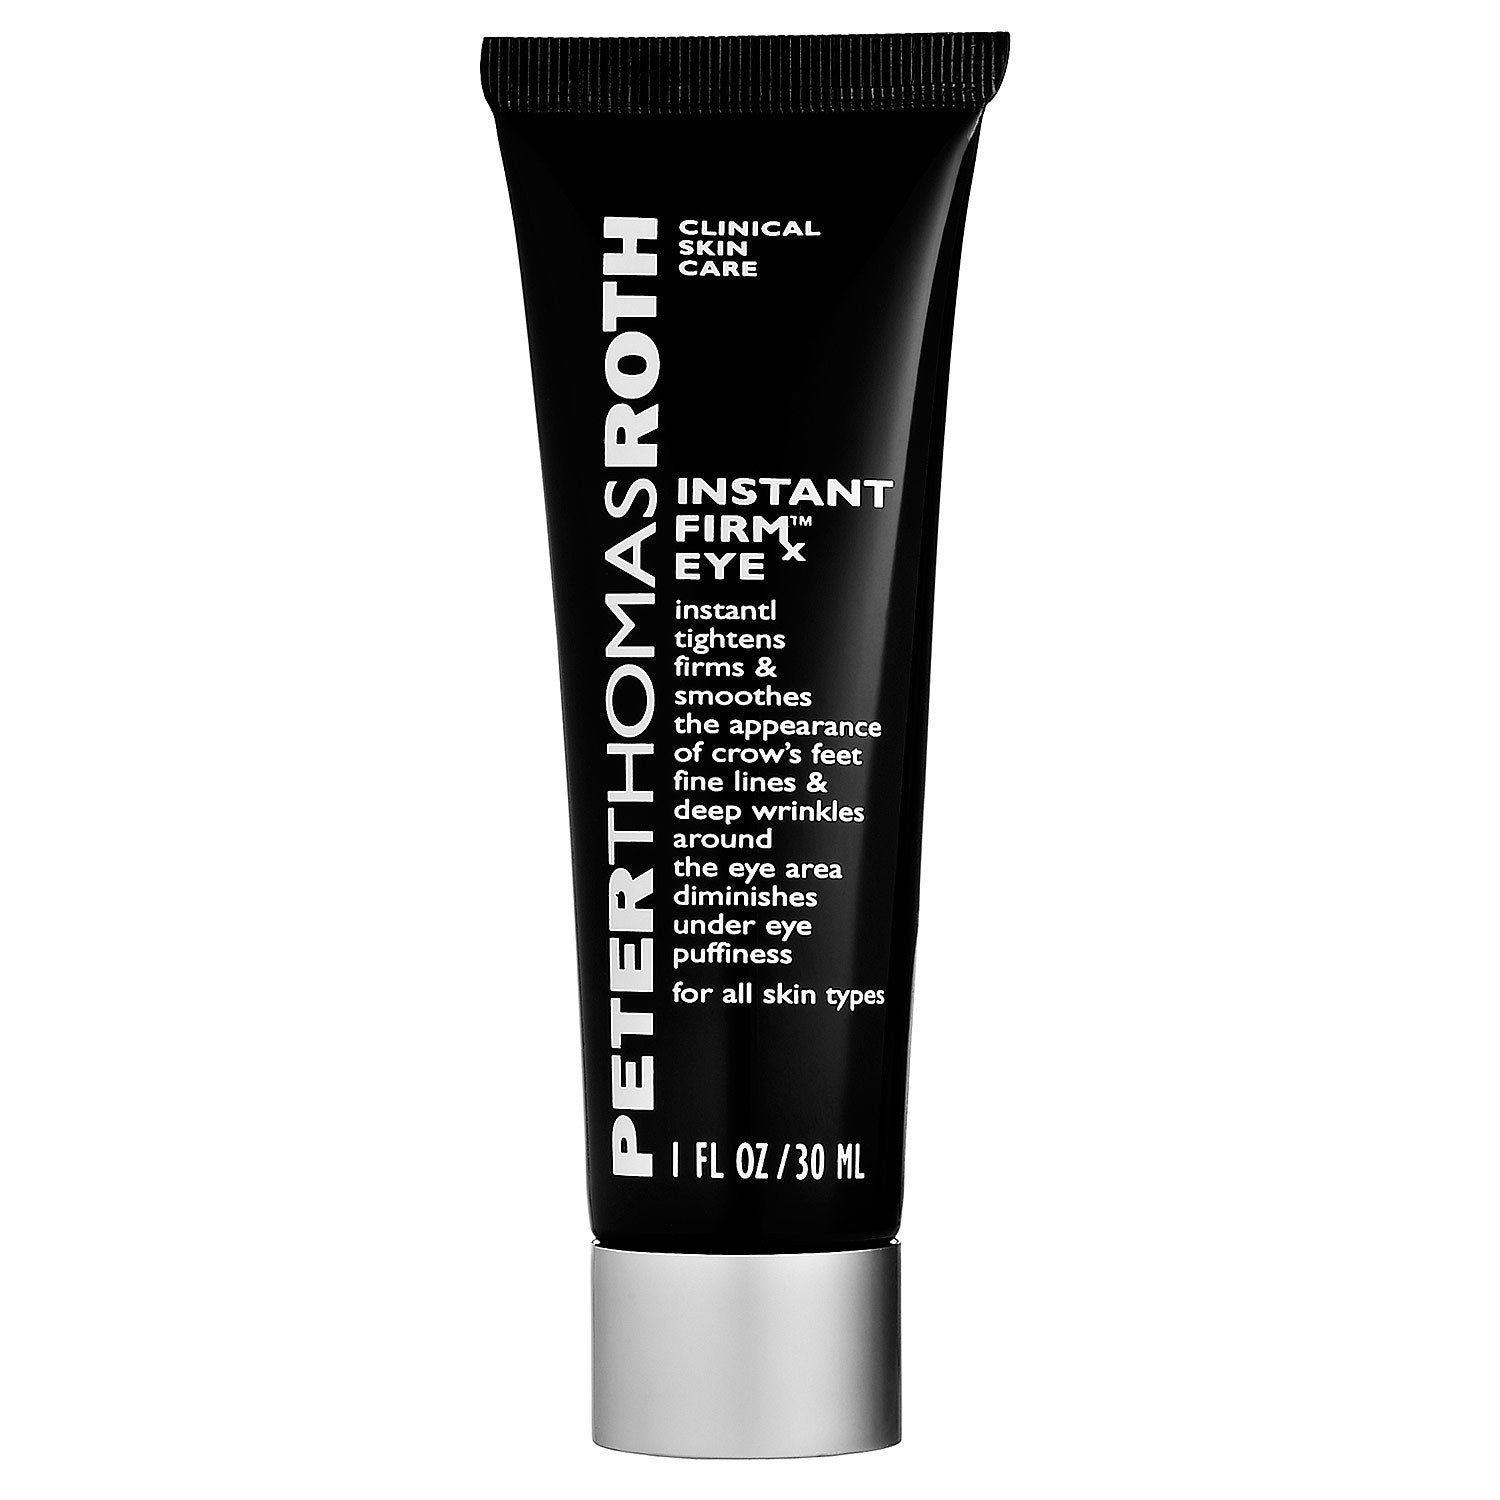 Peter Thomas Roth Instant Firmx Temporary Eye Tightener, ...